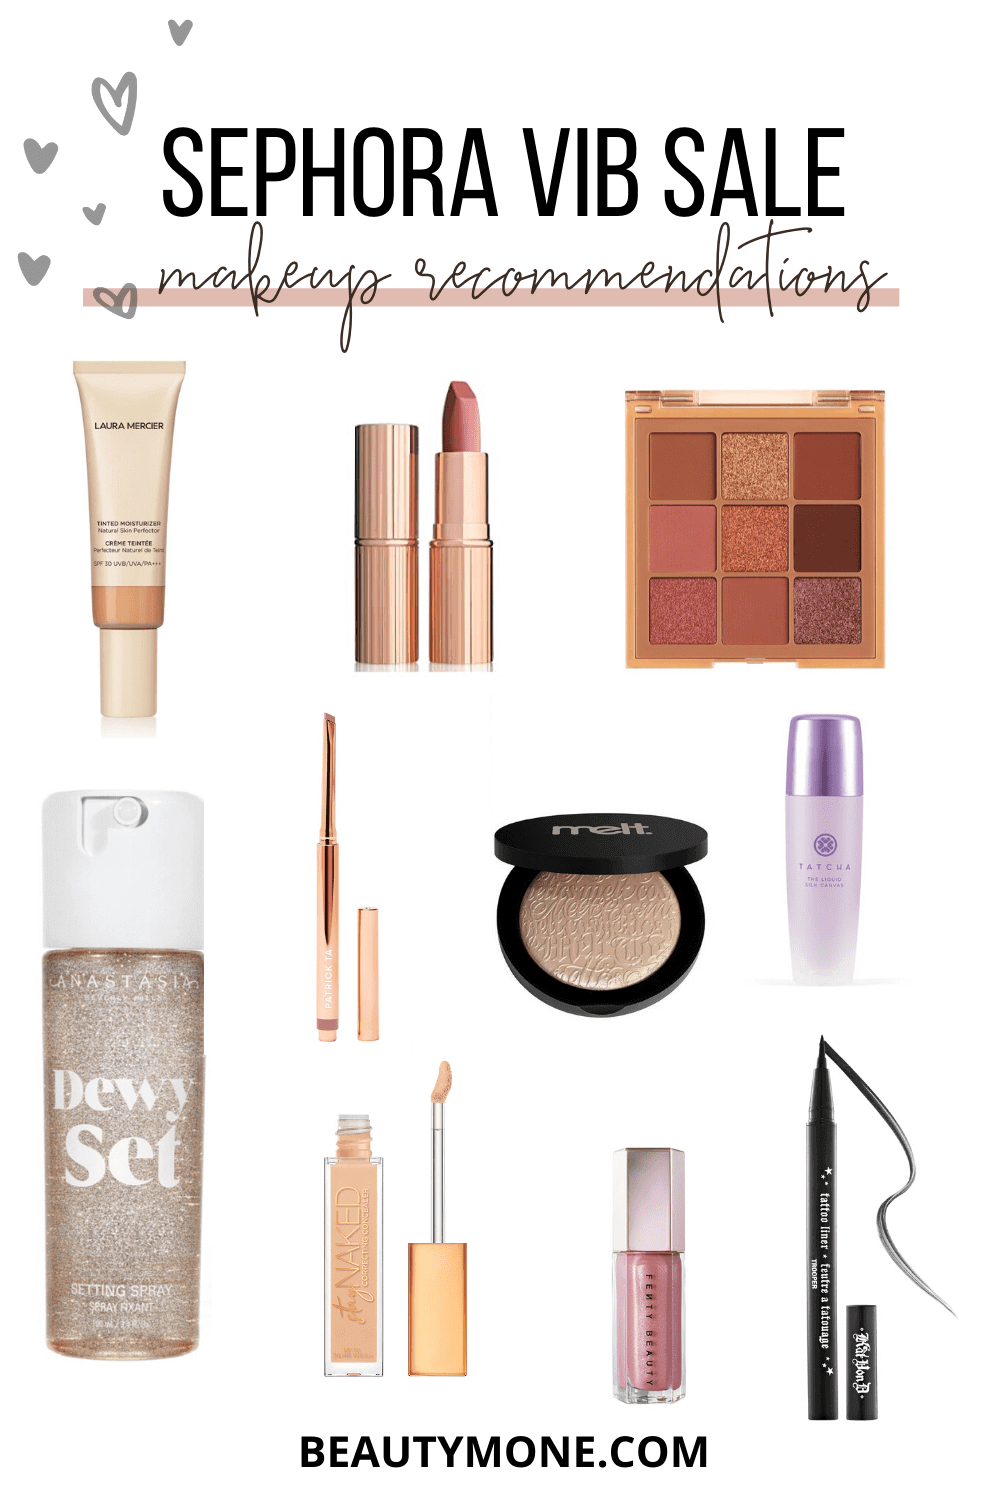 20 Sephora VIB Sale Recommendations - Makeup